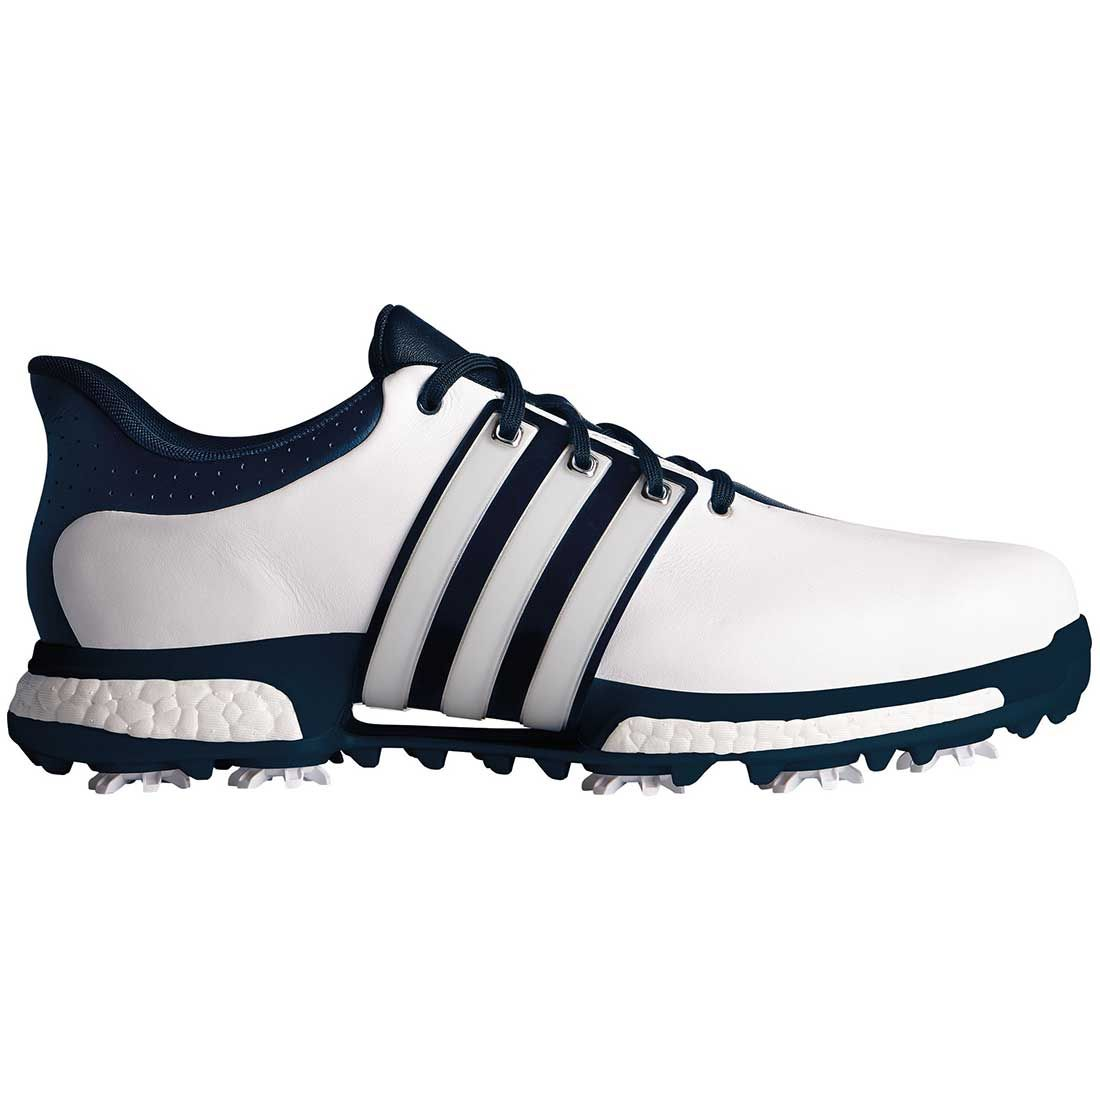 Adidas Tour360 Boost Golf Shoes White Slate Silver